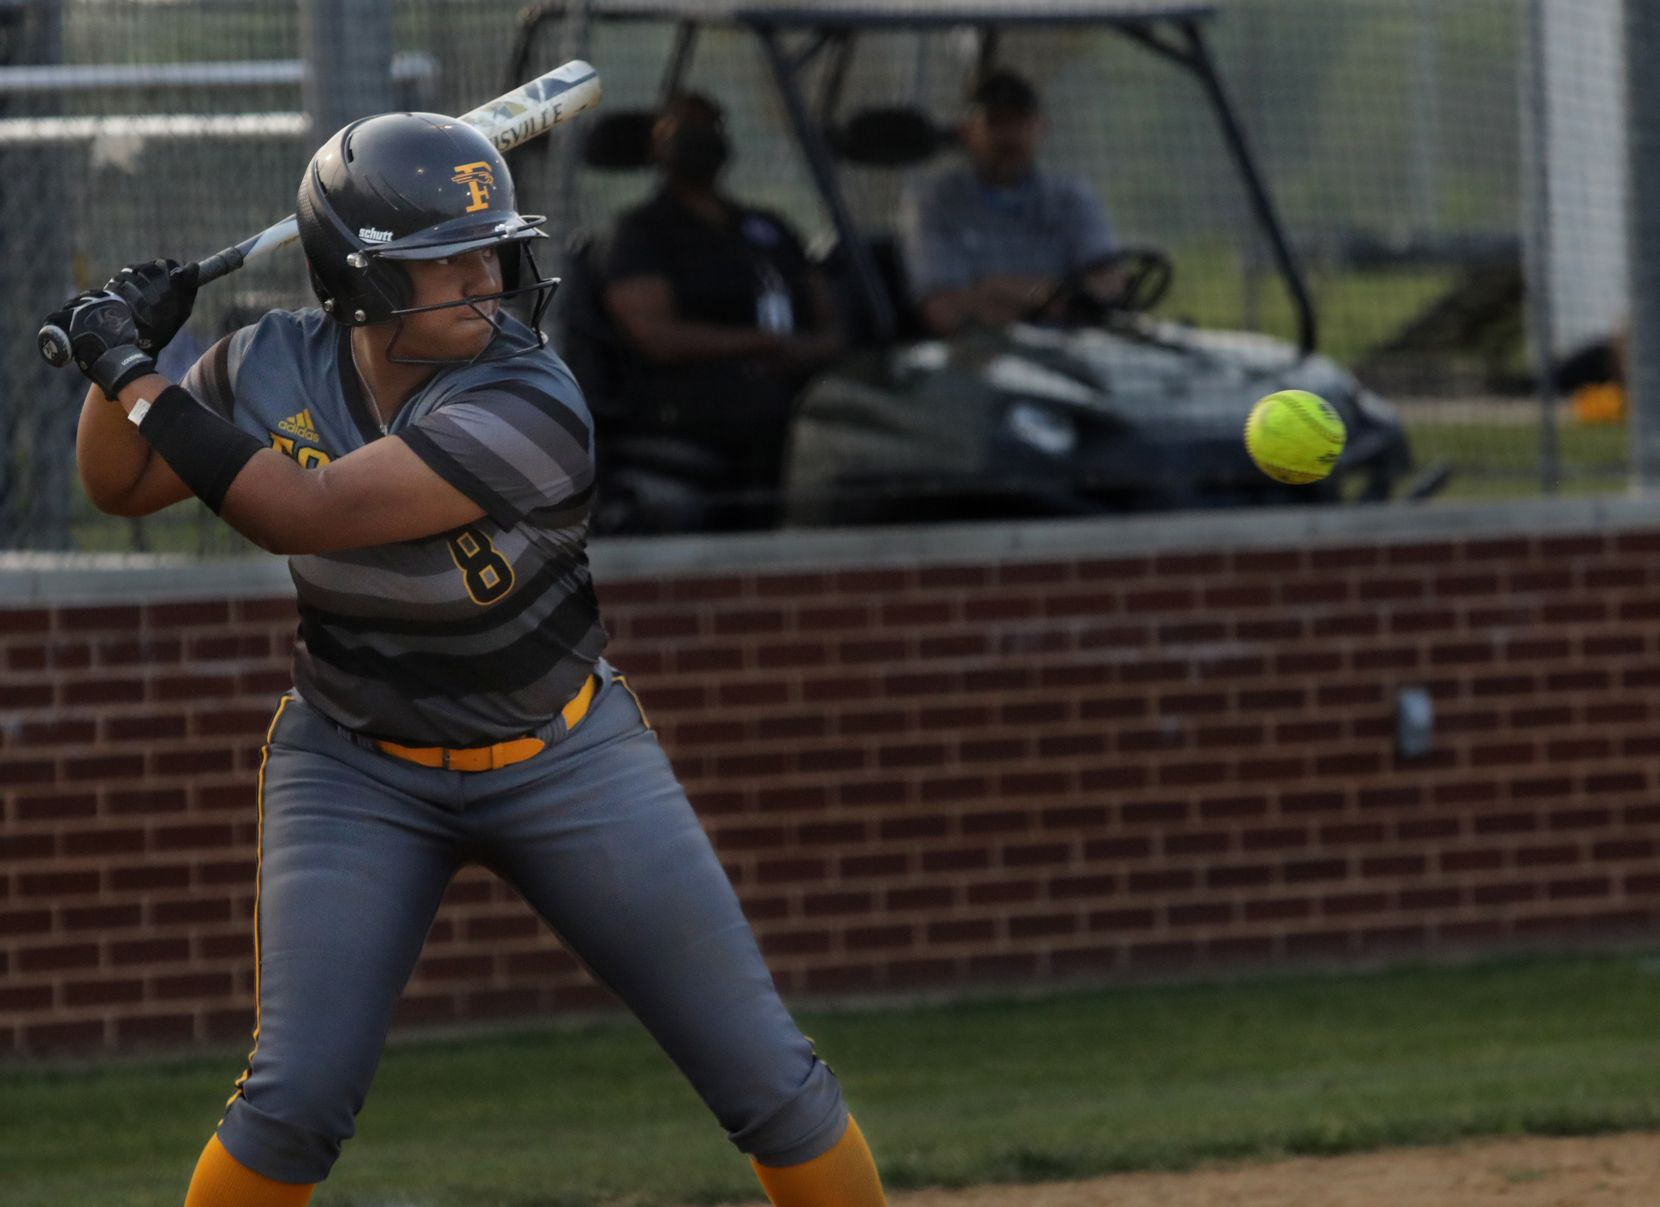 Vanessa Hollingsworth prepares to swing for the ball during a softball game between Forney at North Forney at North Forney High School in Forney, TX, on Apr. 9, 2021. (Jason Janik/Special Contributor)